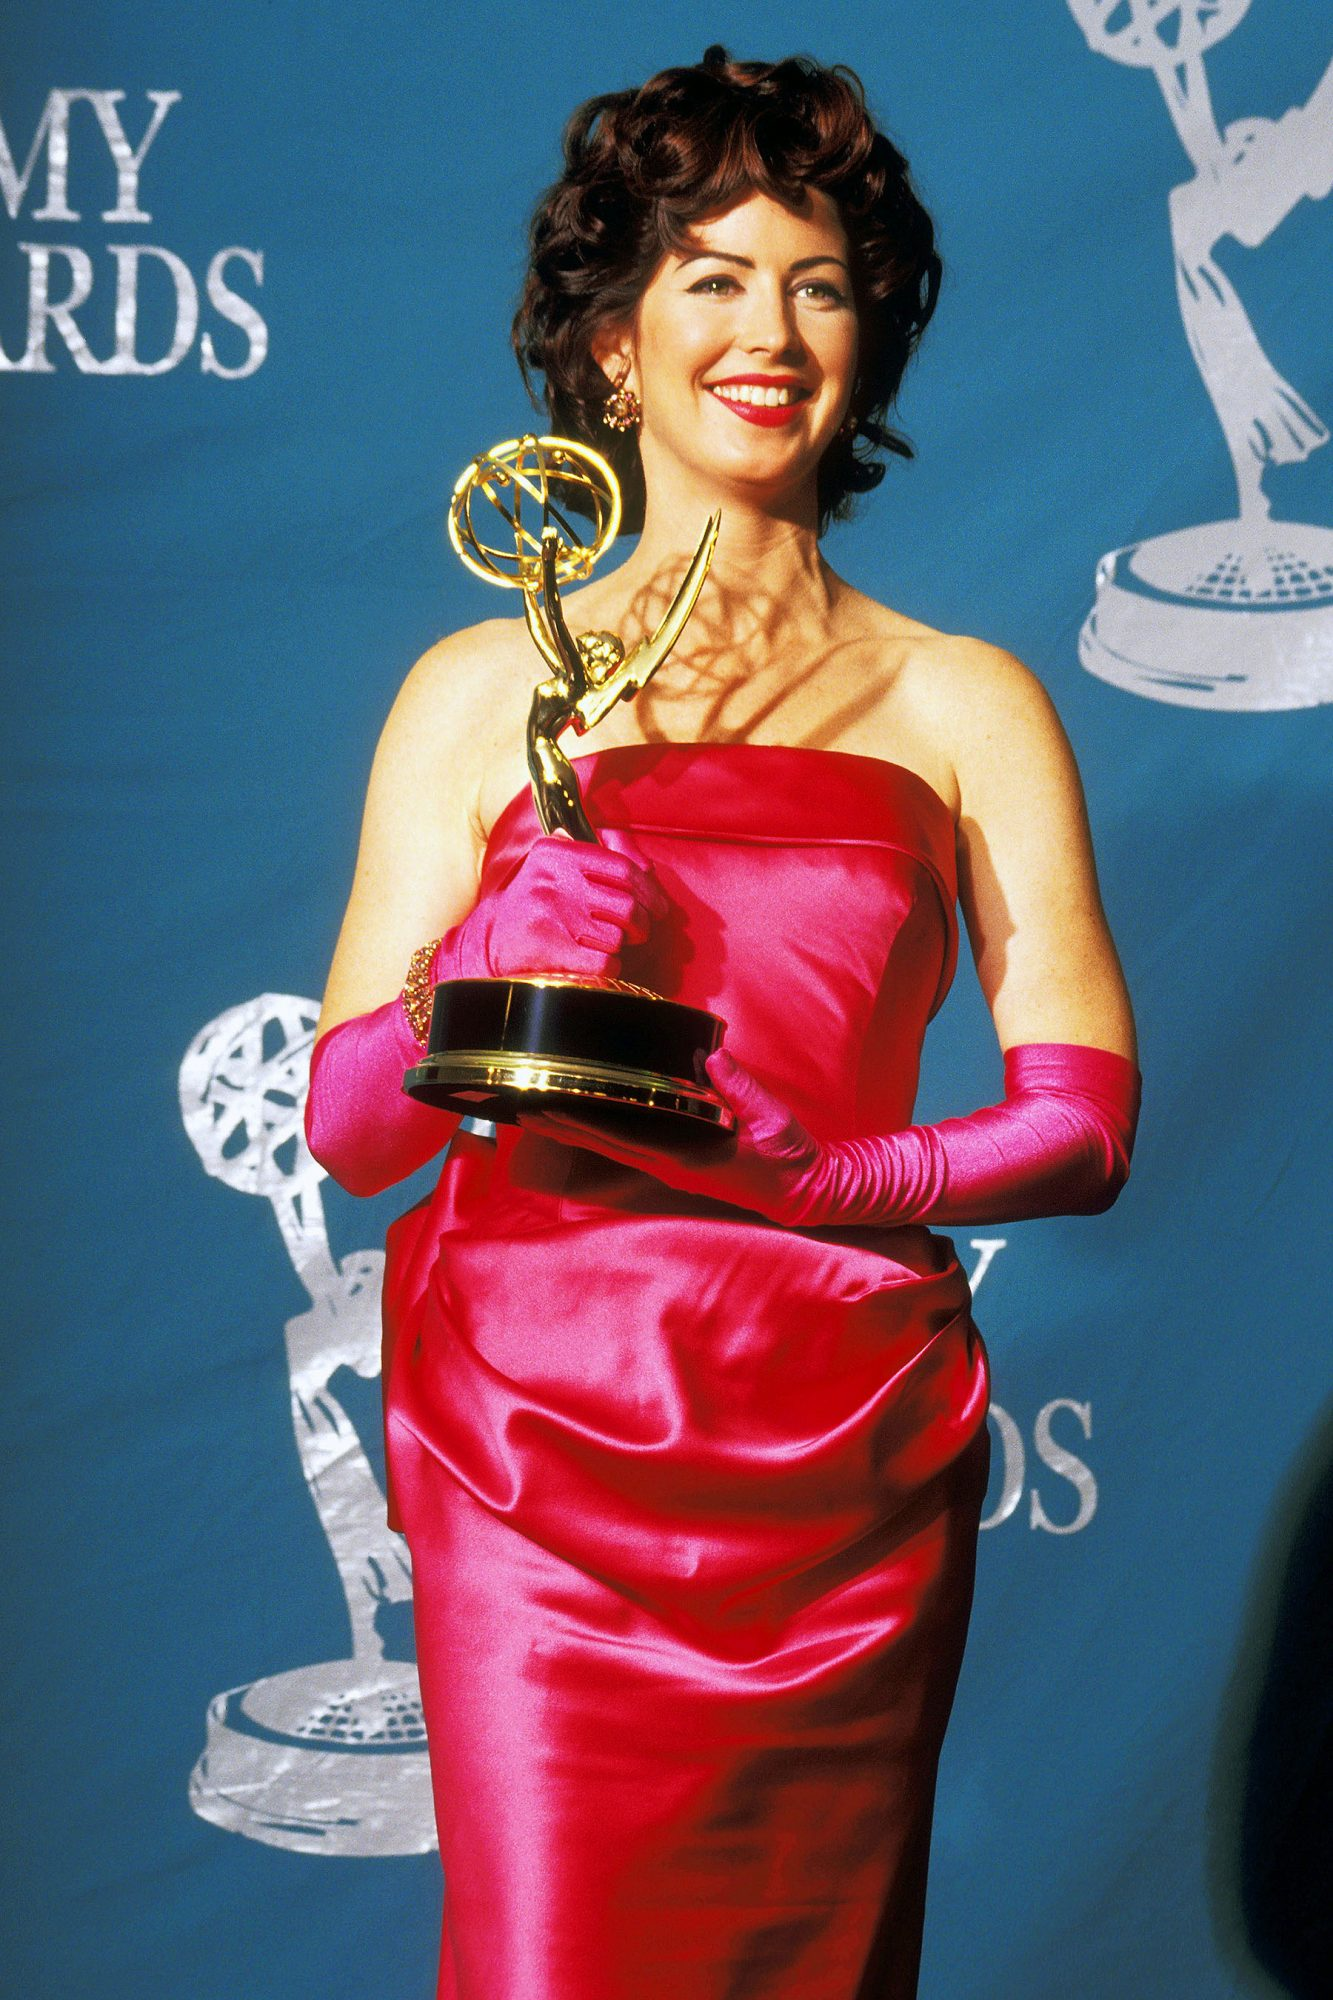 44th Annual Primetime Emmy Awards